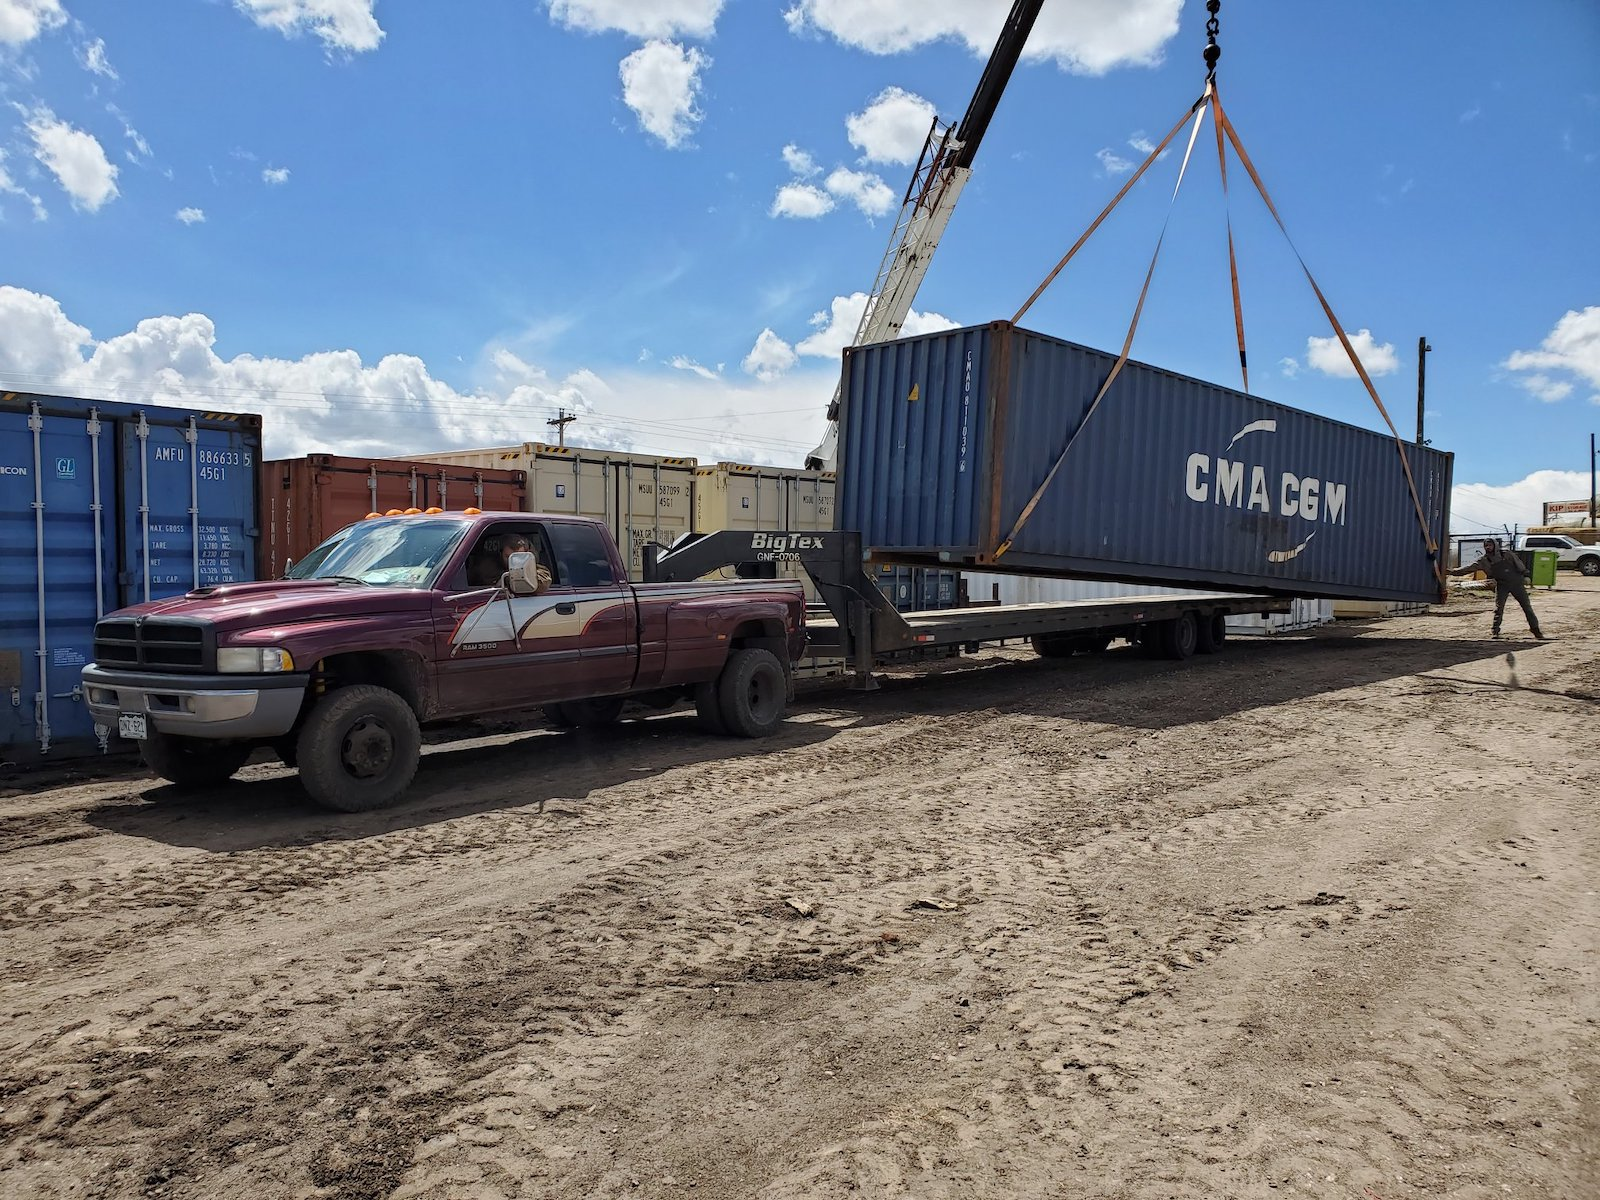 Image of a shipping container being loaded onto a truck